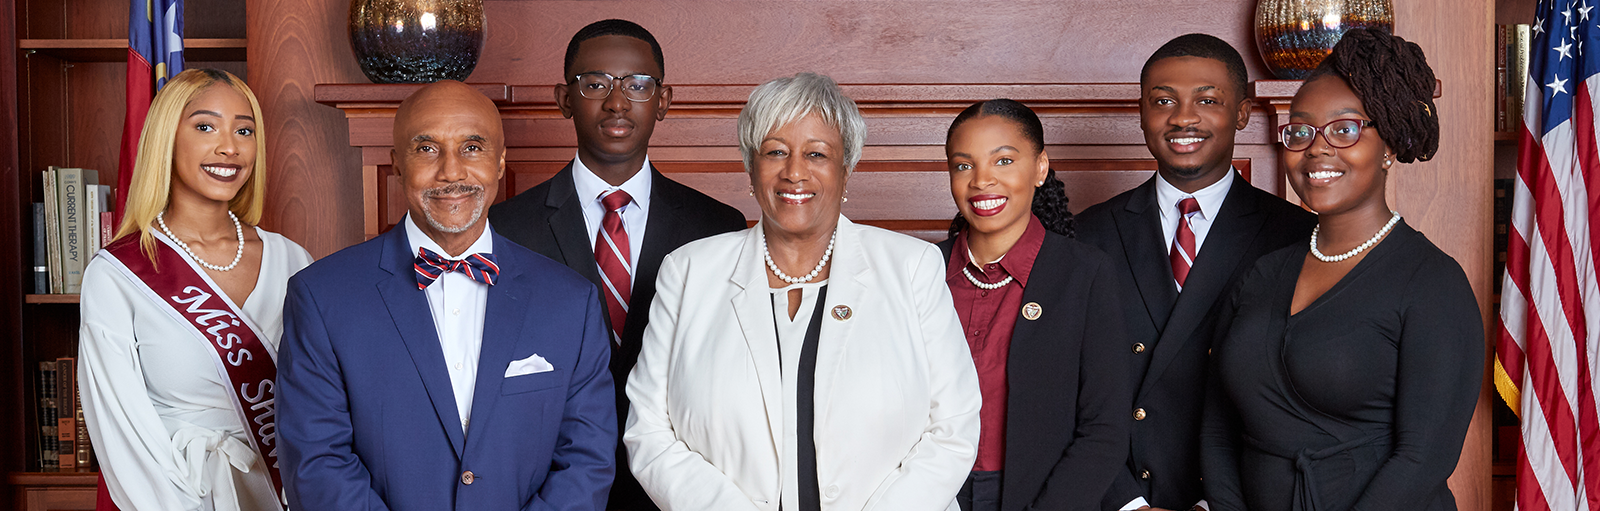 President Dillard and Dr. Powell with student leaders